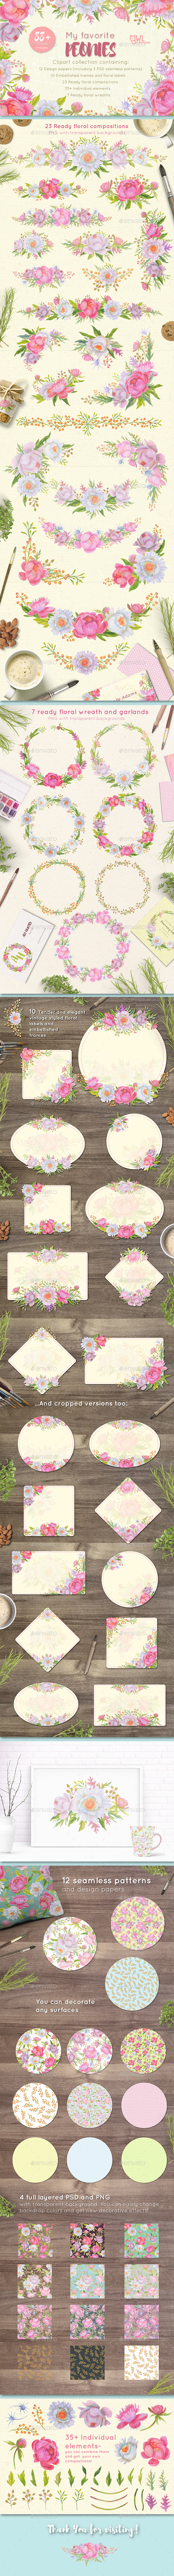 Floral Design Pack (Watercolor & Pastel) - Miscellaneous Illustrations